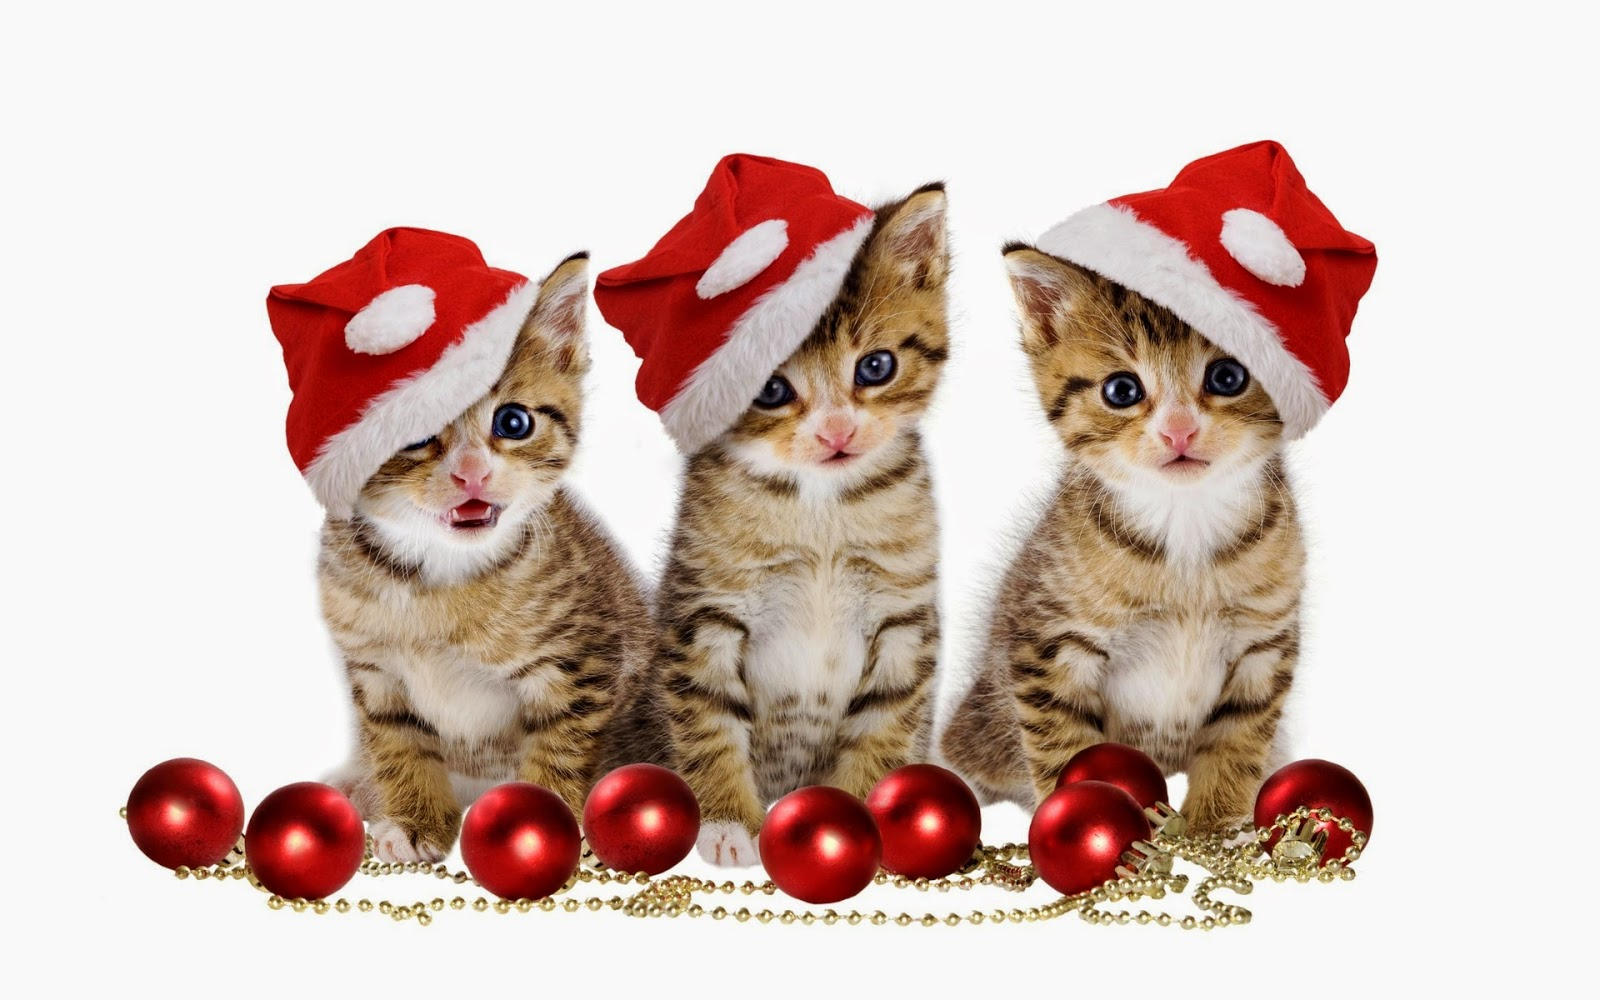 Lovely Cute Kittens and Puppies Christmas kittens 1600x1000